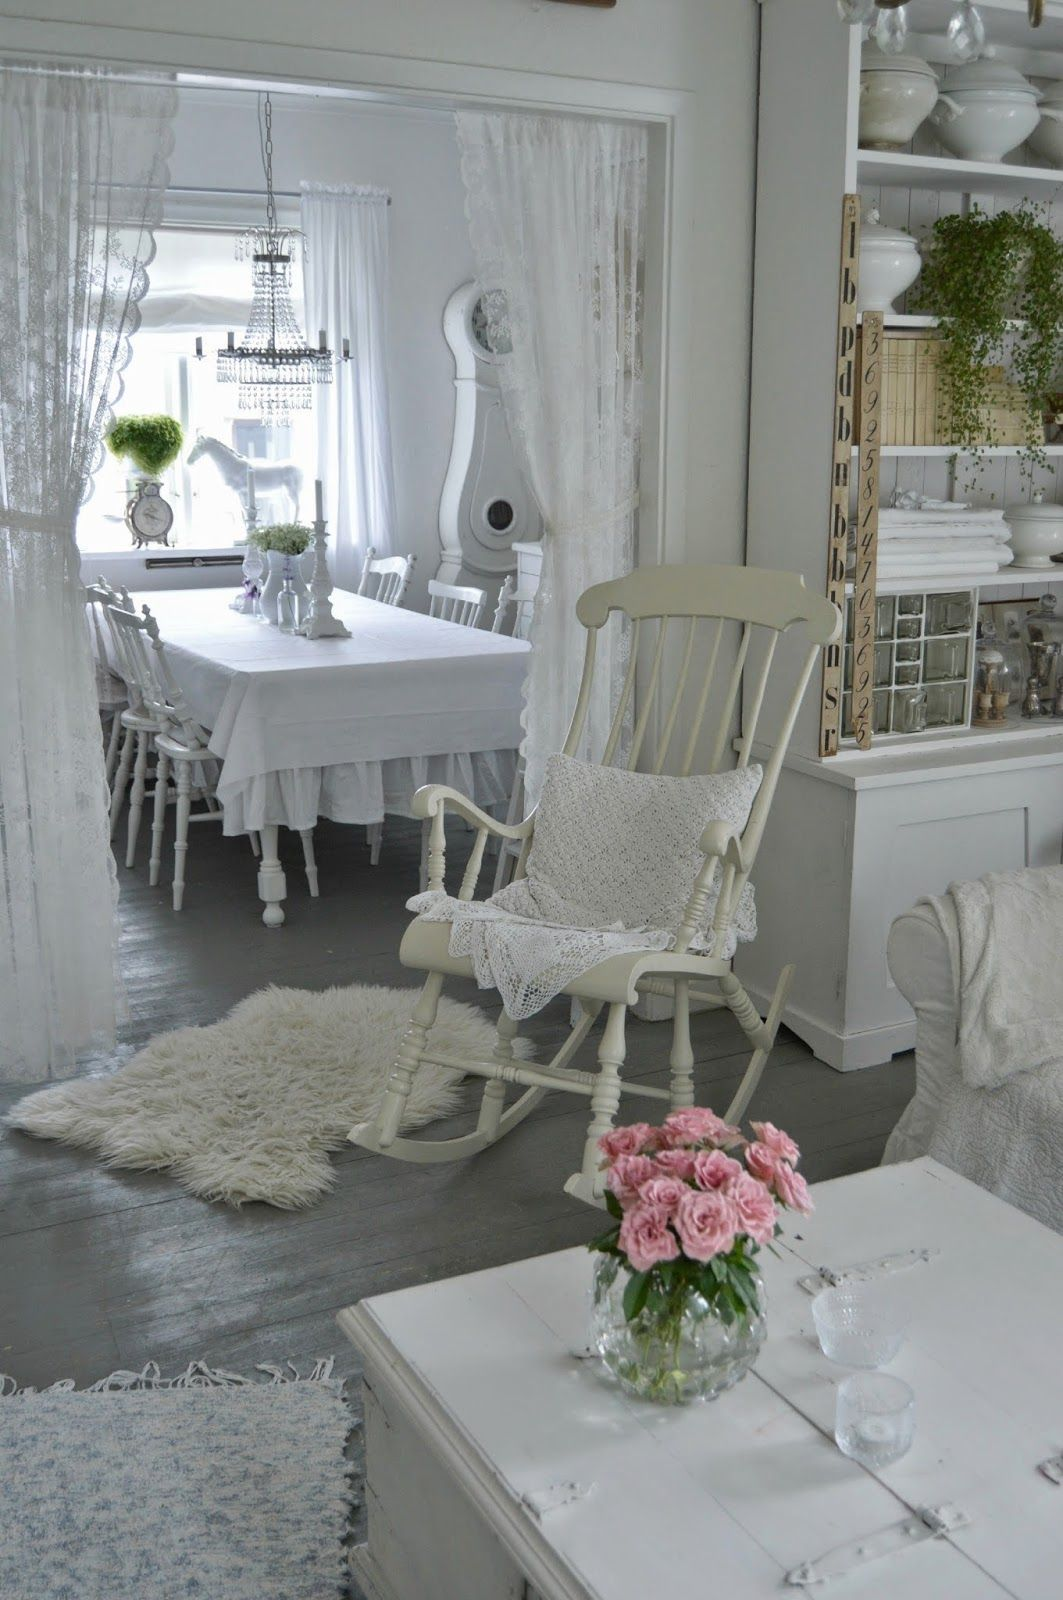 Just Our Style Love The White Clean Shabby Chic In These